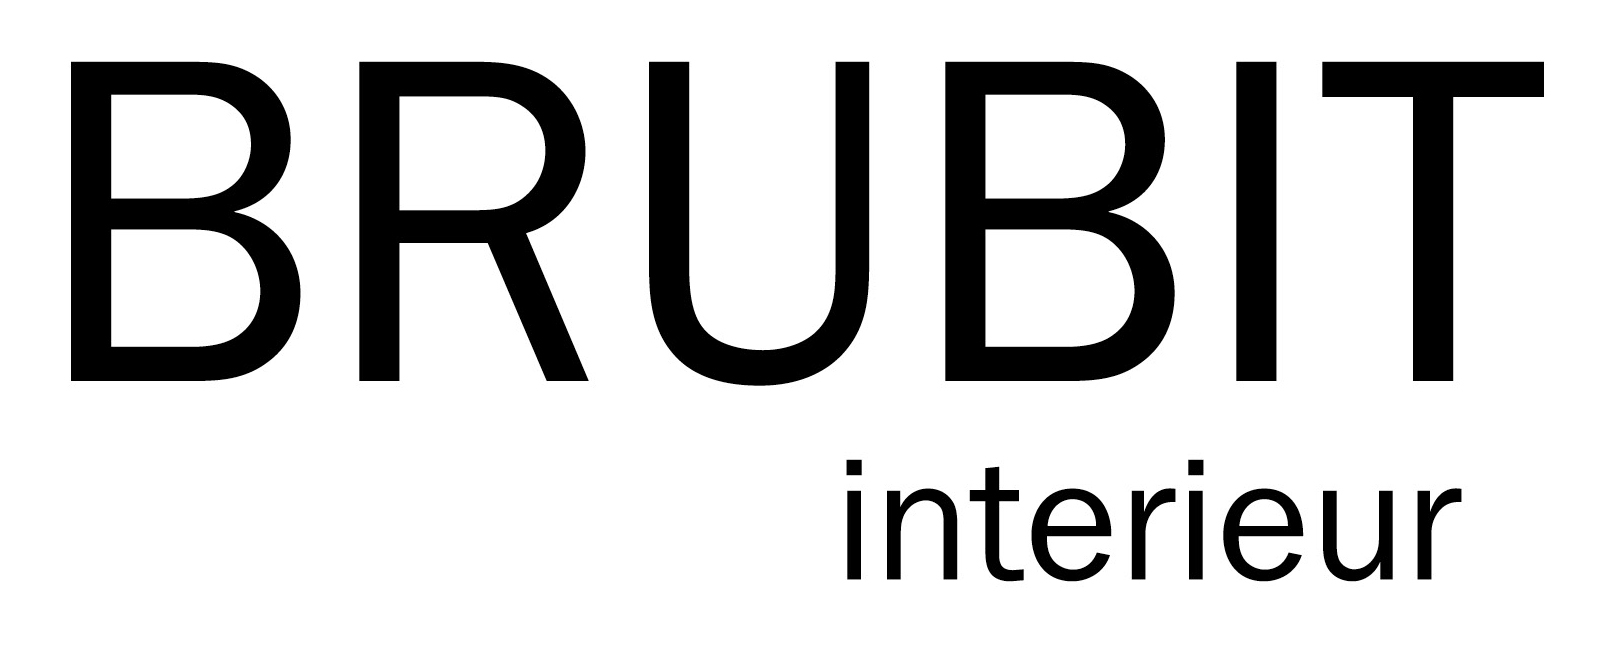 Bruinsma Interieur Brubit Ambista B2b Network Of The Furnishing Industry